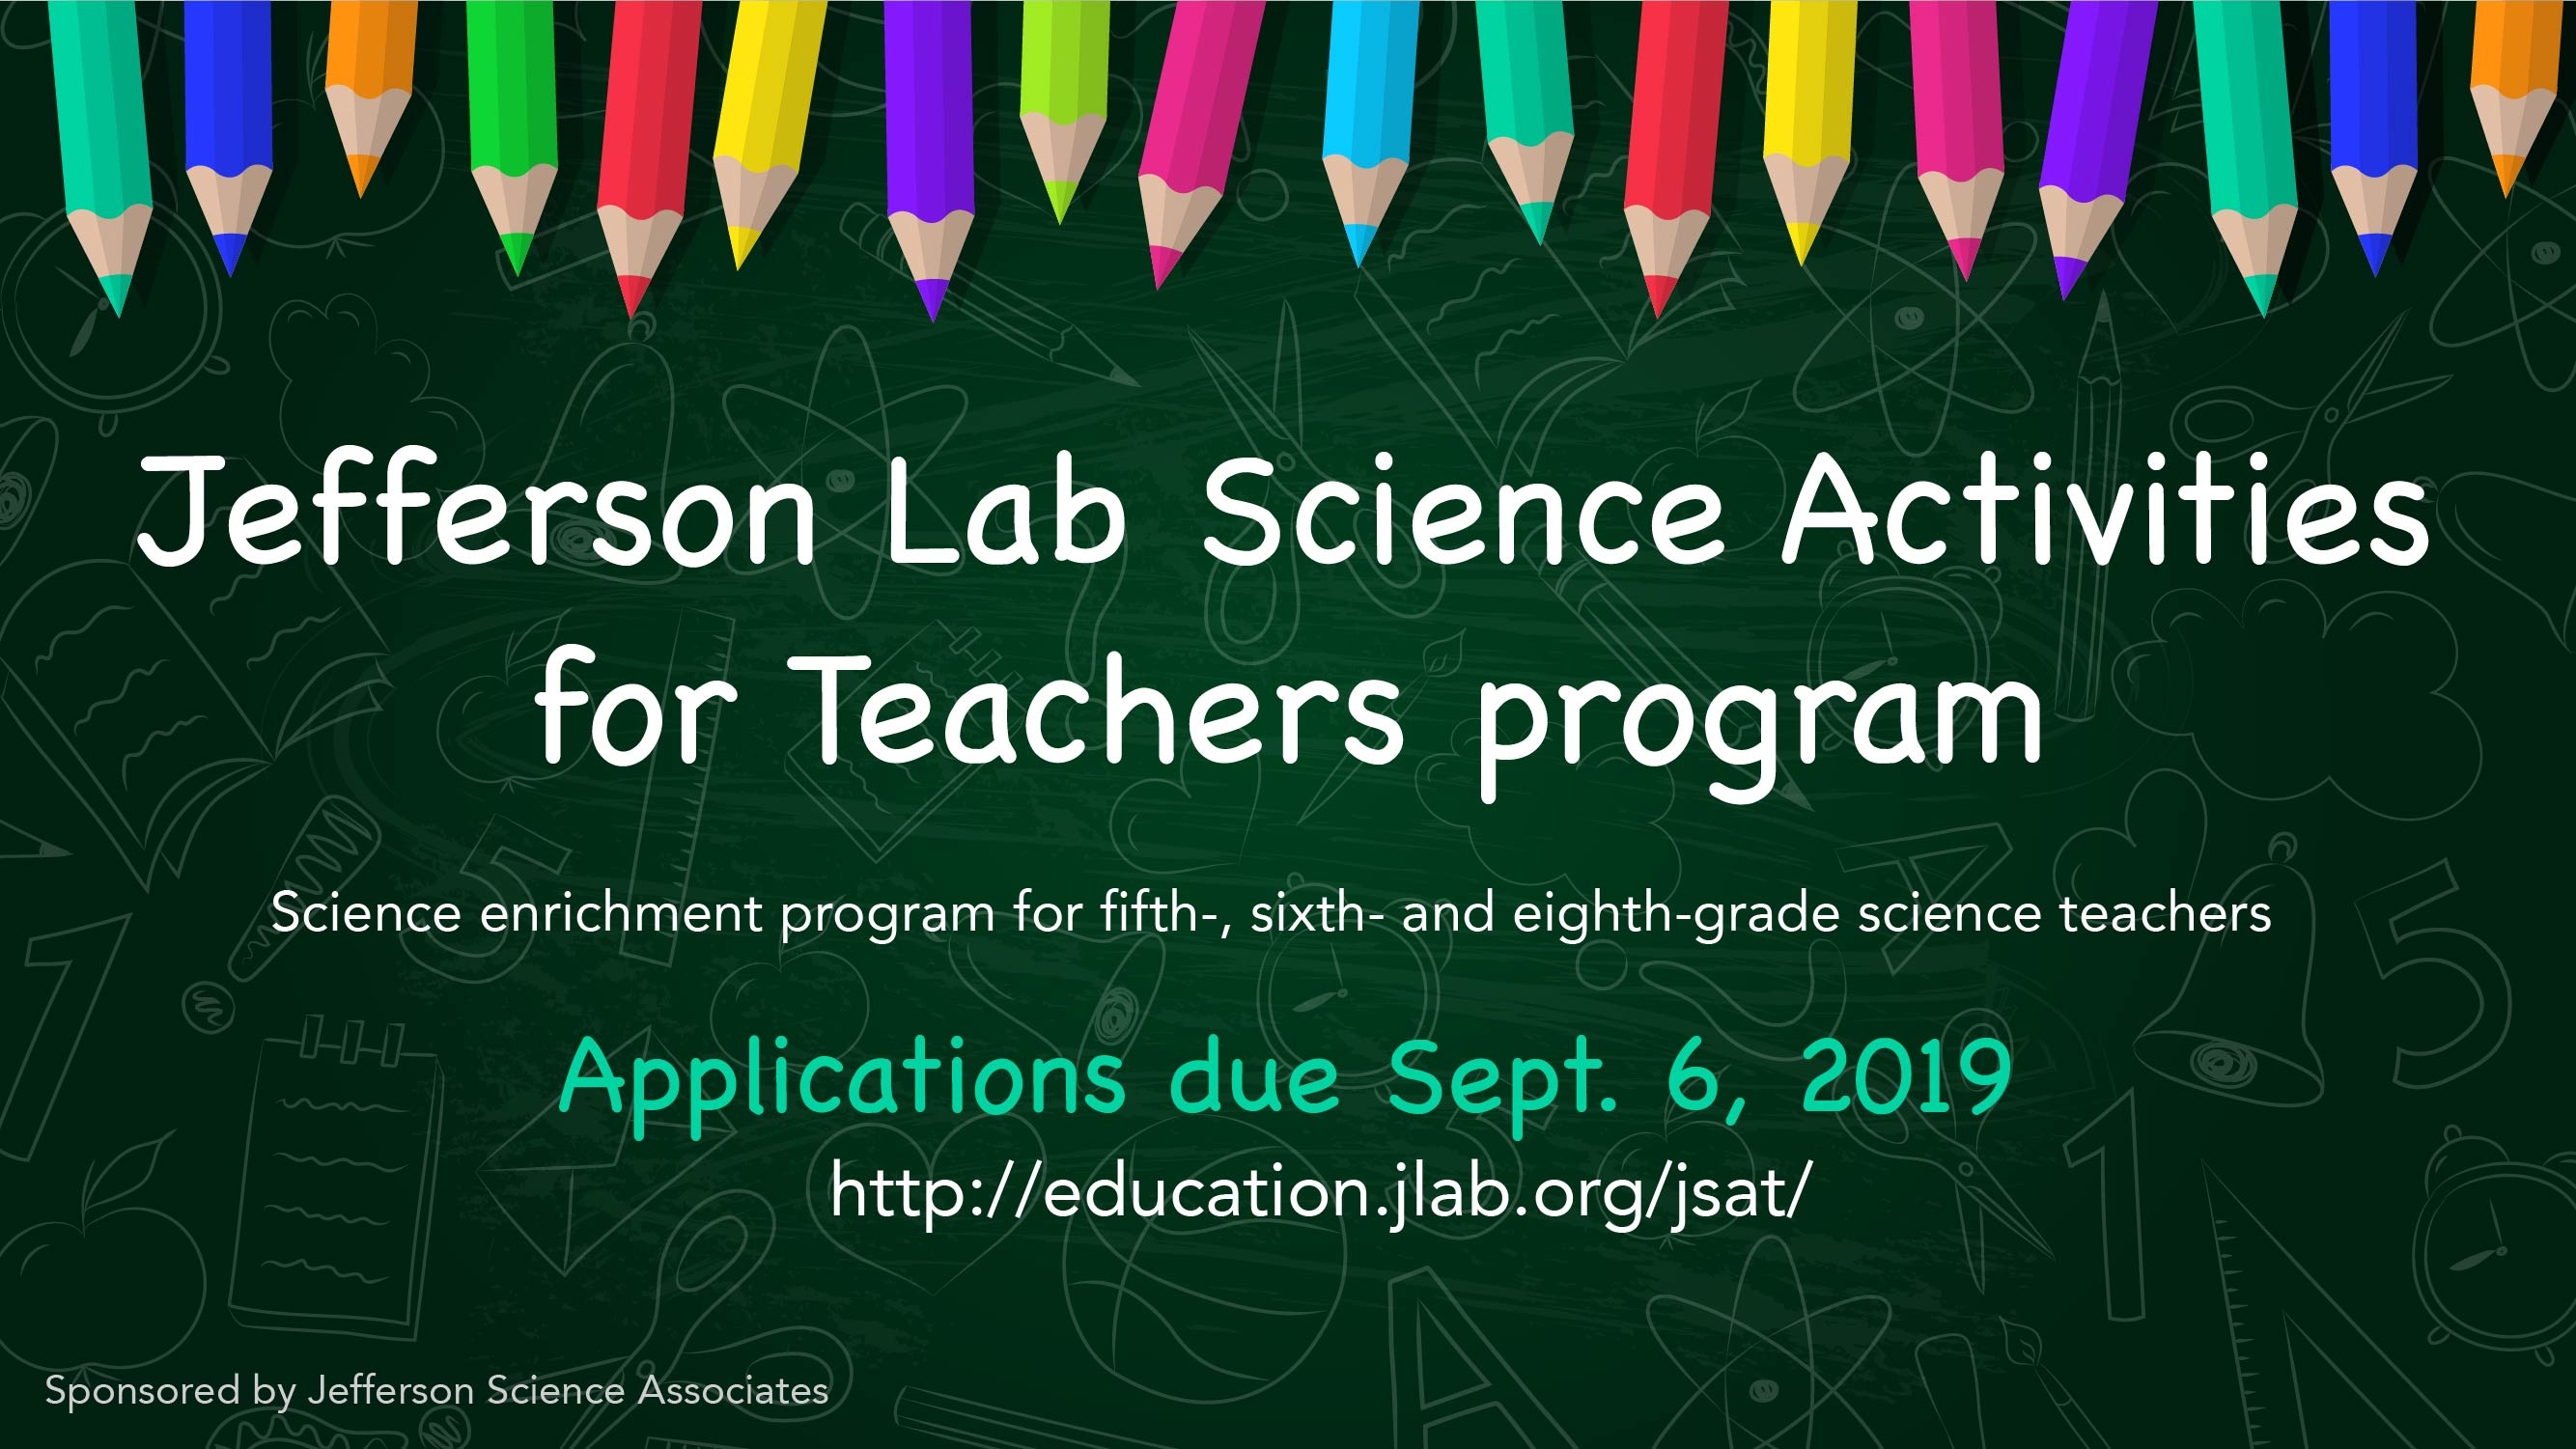 Graphic of JSAT info: Applications due Sept. 6, program for 5th, 6th and 8th grade science teachers, sponsored by JSA, visit education.jlab.org/jsat for more info